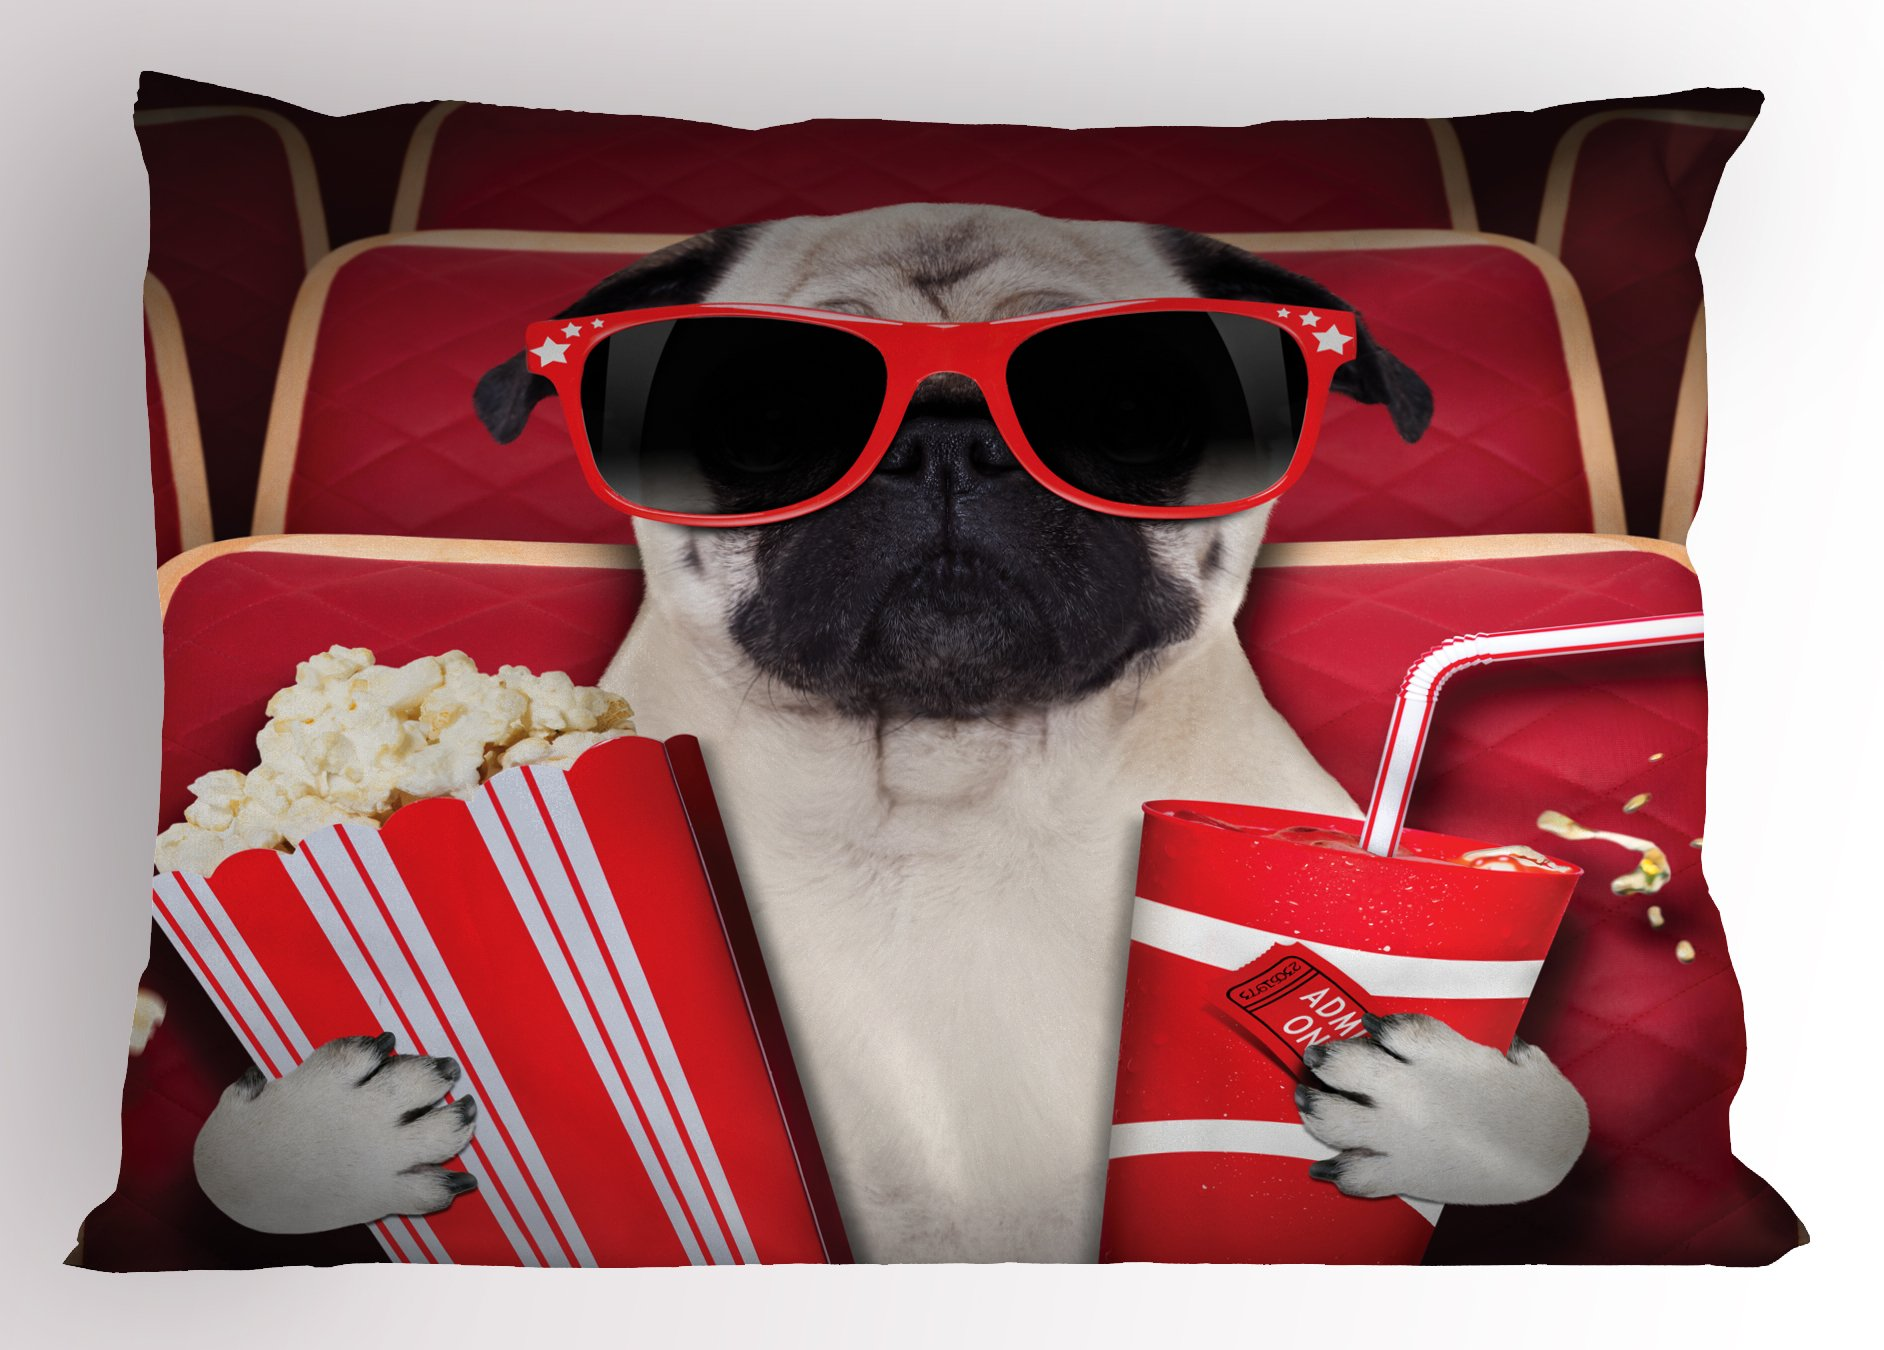 Ambesonne Pug Pillow Sham, Funny Dog Watching Movie Popcorn Soft Drink and Glasses Animal Photograph Print, Decorative Standard Size Printed Pillowcase, 26 X 20 Inches, Red Cream Ruby